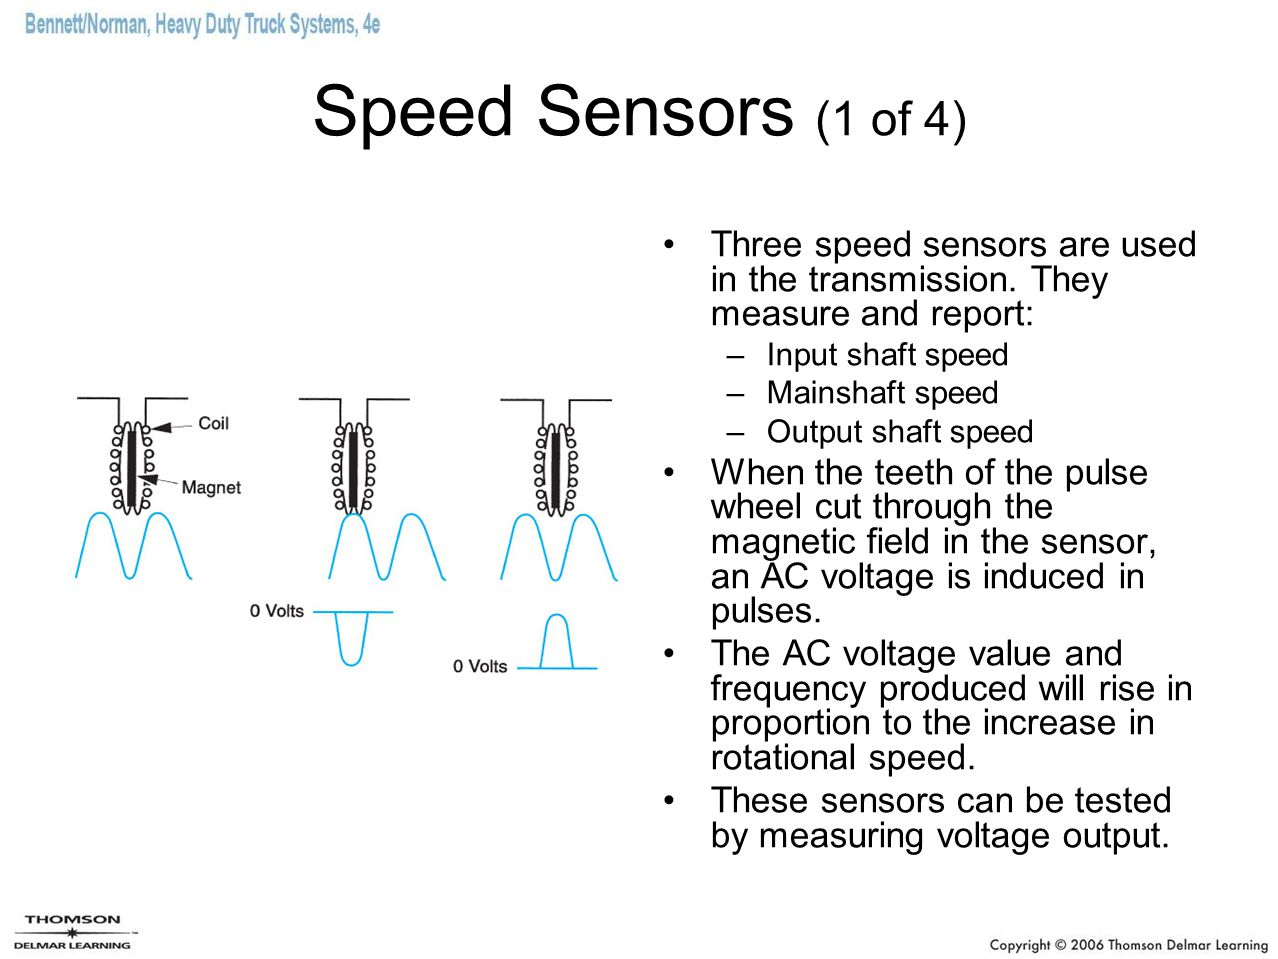 Speed Sensors (1 of 4) Three speed sensors are used in the transmission. They measure and report: Input shaft speed.